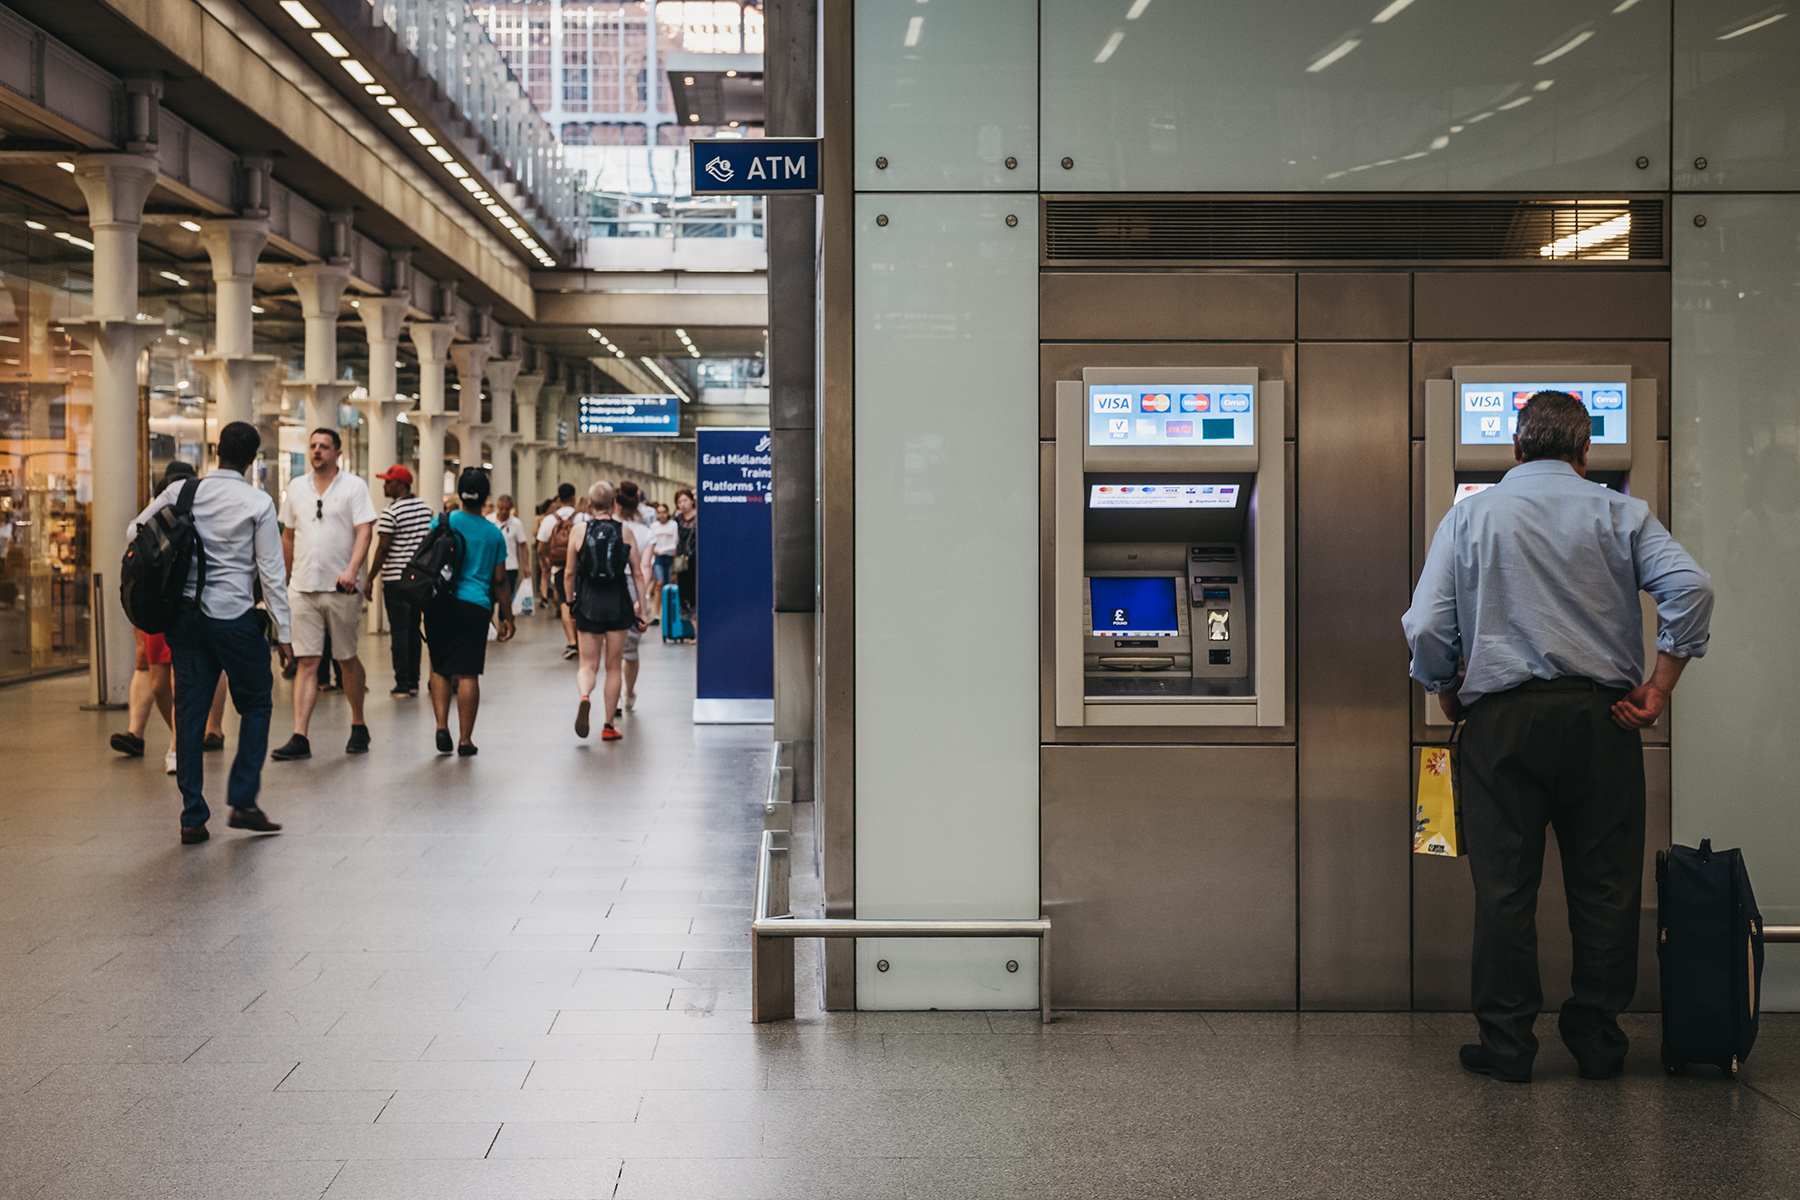 A man uses an ATM at St Pancras station